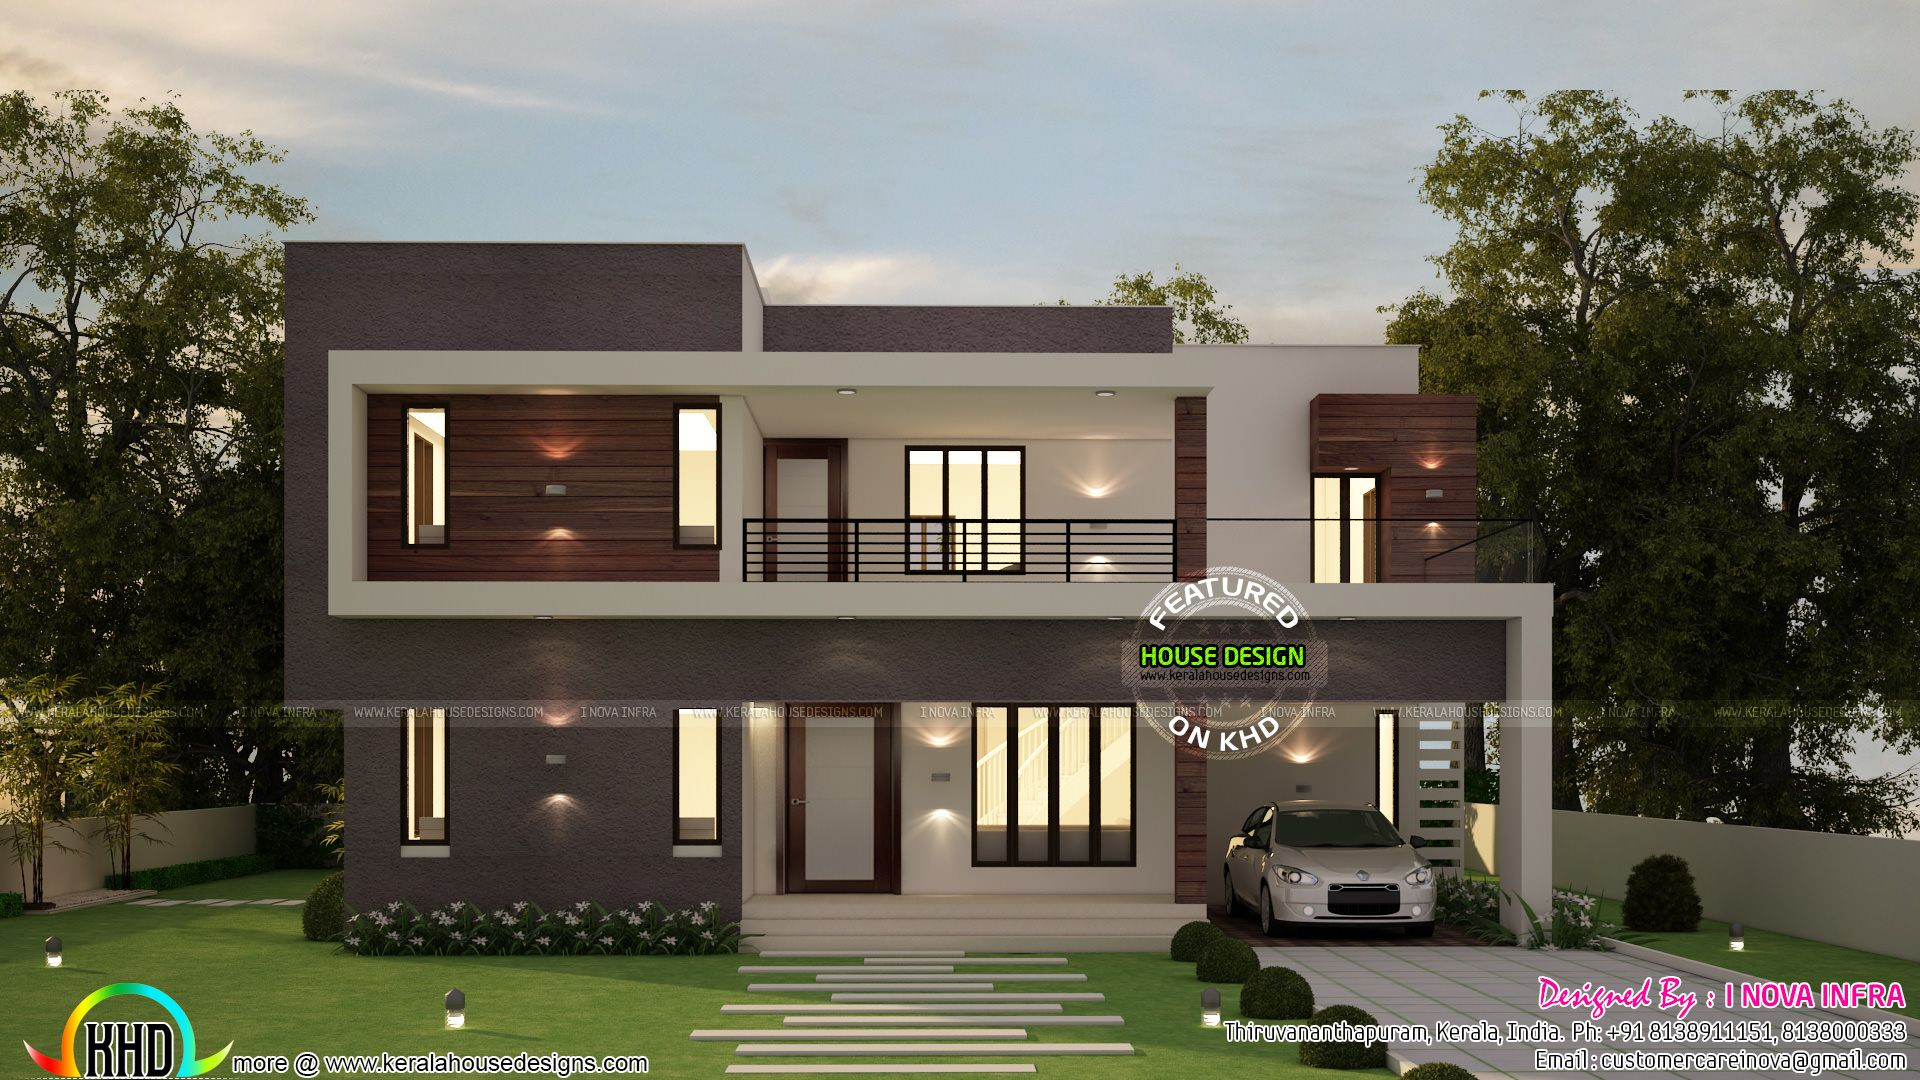 4 Bedroom Flat Roof Contemporary 2300 Sq Ft Kerala Home Flat Roof House Small House Design Duplex House Design